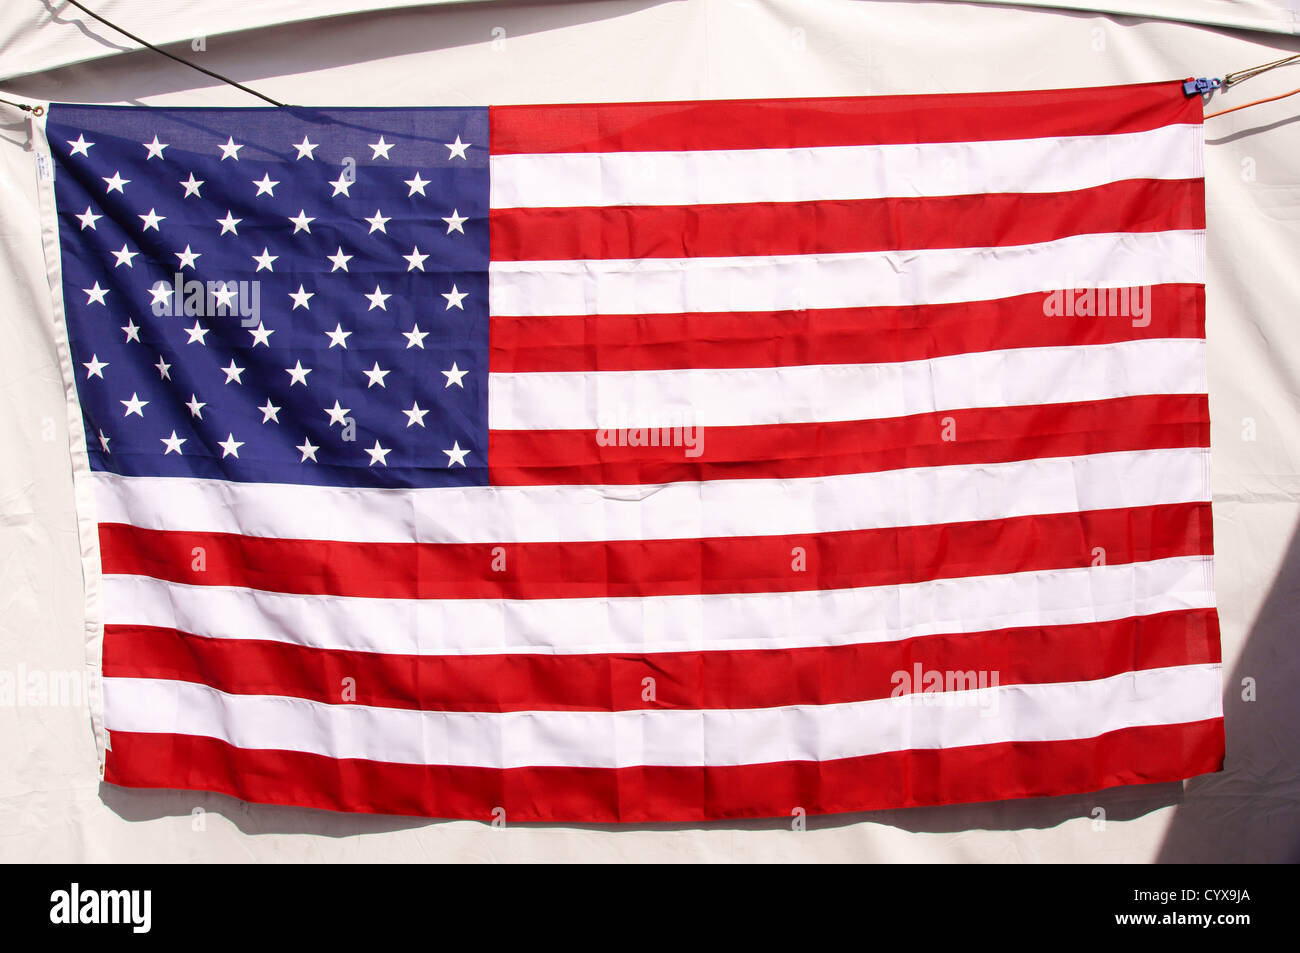 american flag on side of tent pennant symbol banner colors emblem ensign jack pennon standard streamer usa us & american flag on side of tent pennant symbol banner colors emblem ...